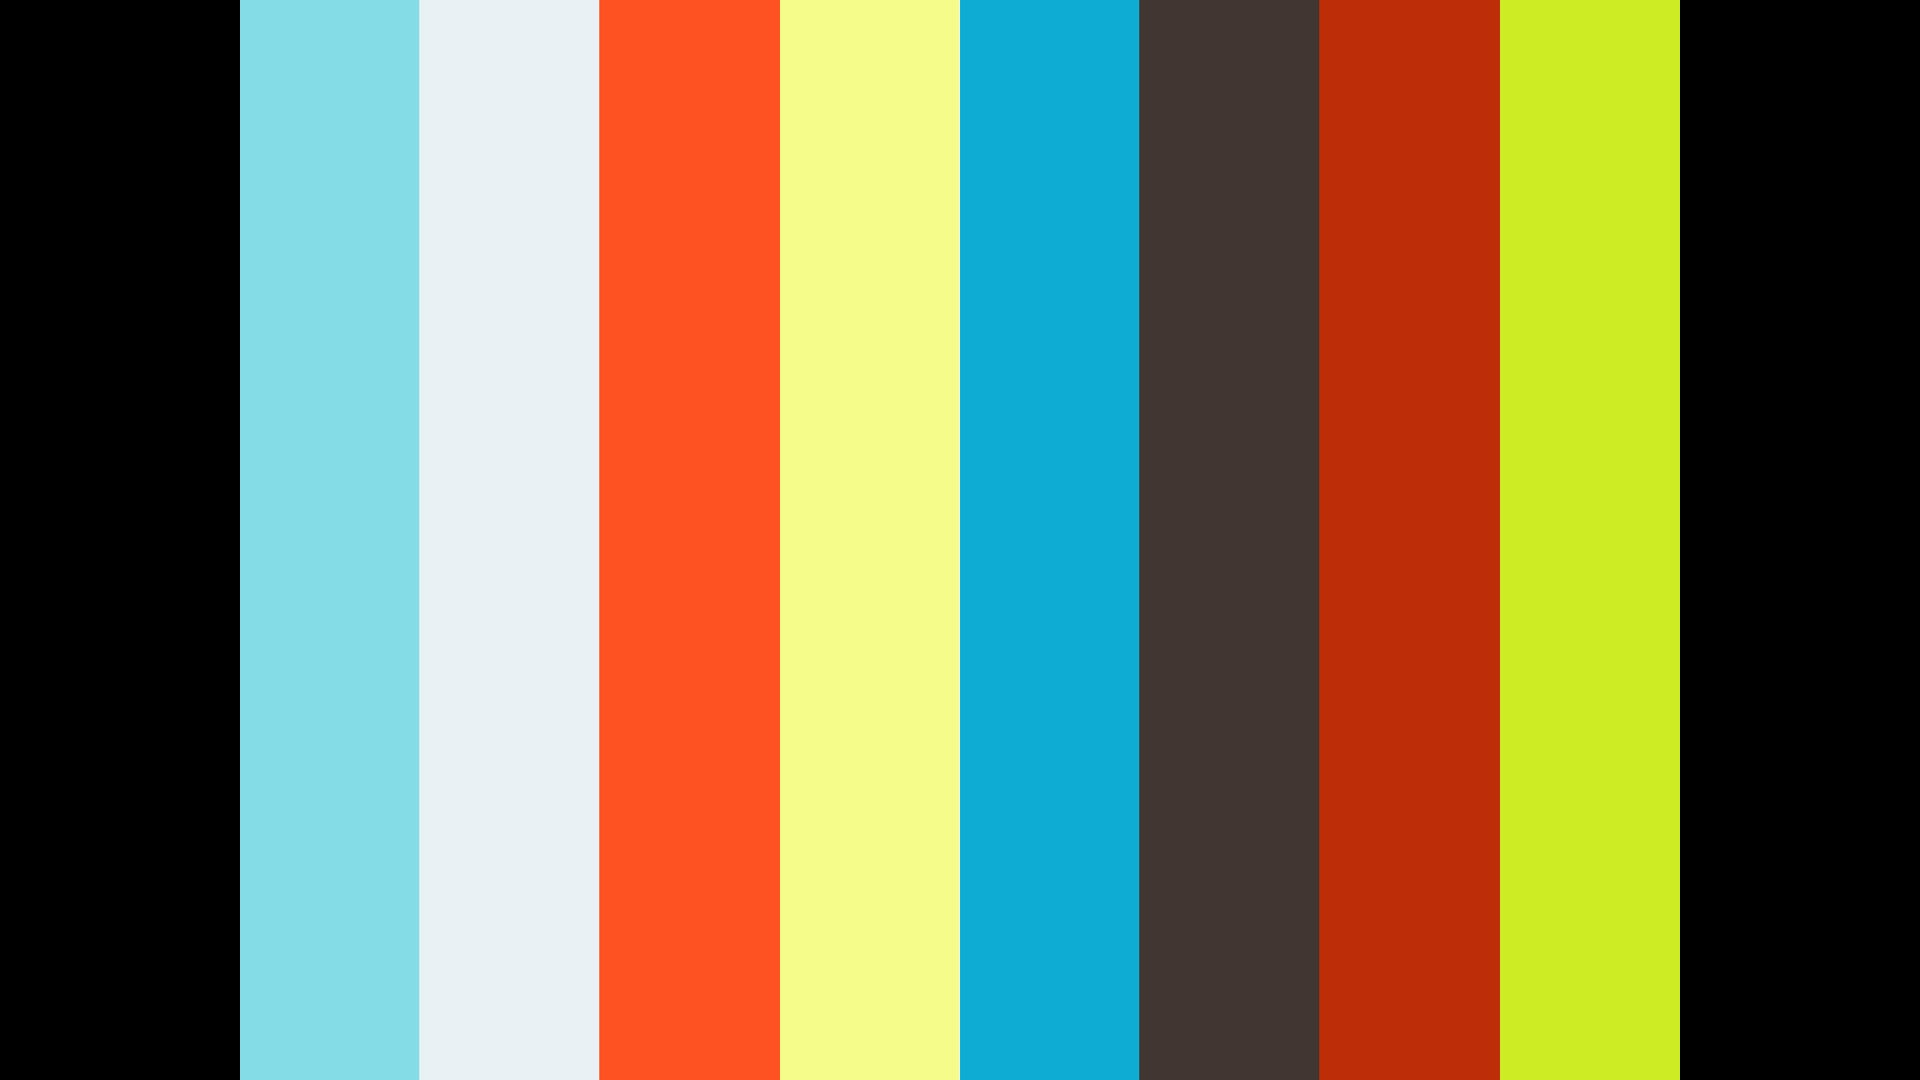 Casper Purchase and Installation